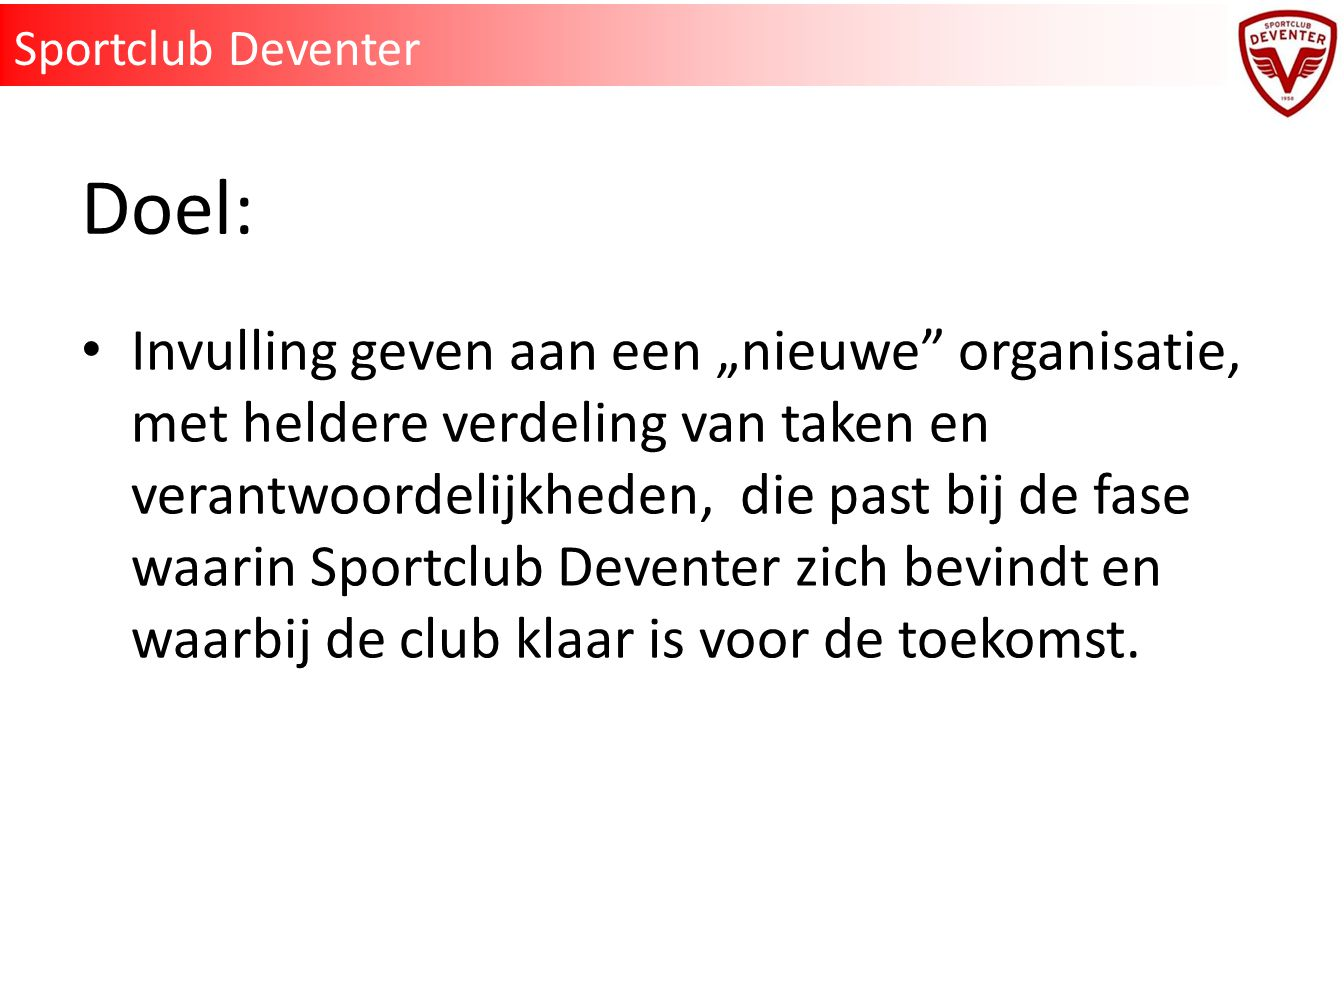 Sportclub Deventer Doel: